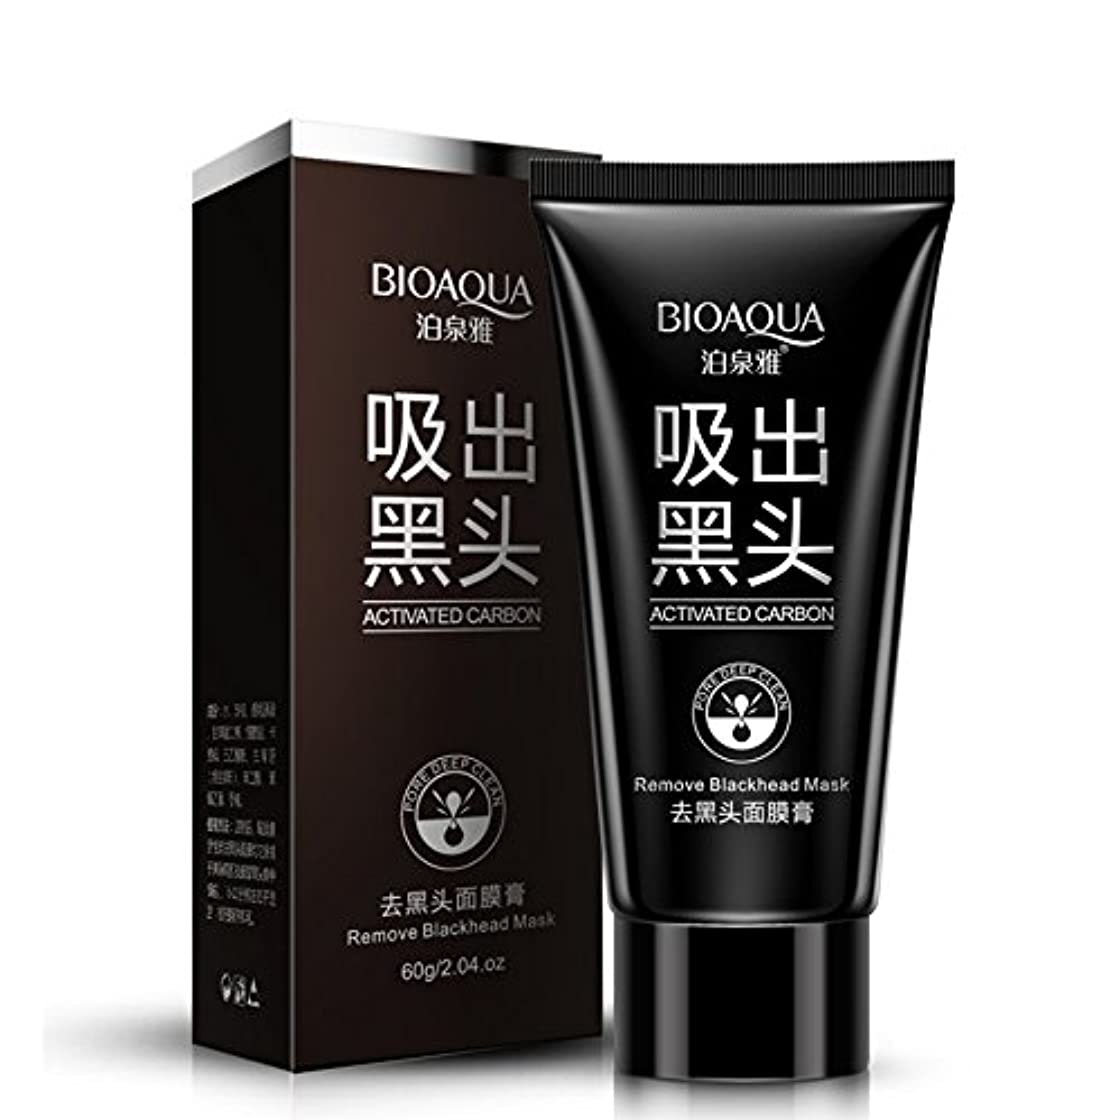 移動する悪名高い壊すSuction Black Mask Shrink Black Head Spots Pores,Face Mask Blackhead Removal Blackheads Cosmetics Facials Moisturizing Skin Care.